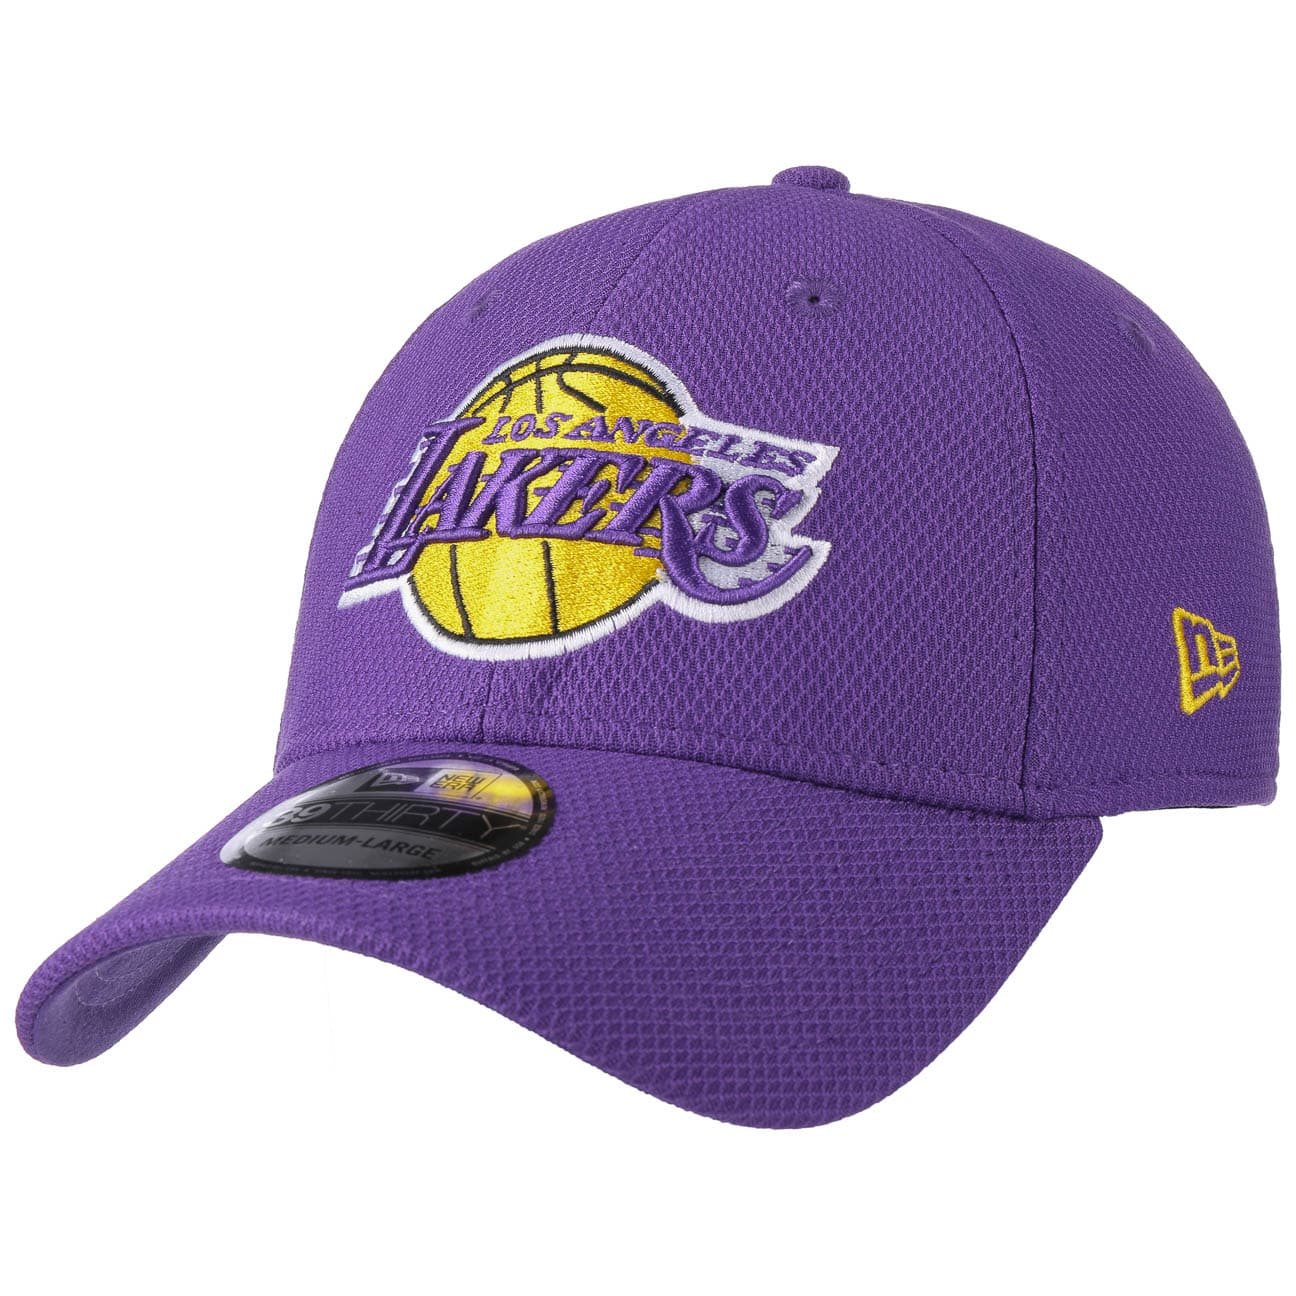 Gorra 39Thirty Diamond Lakers by New Era